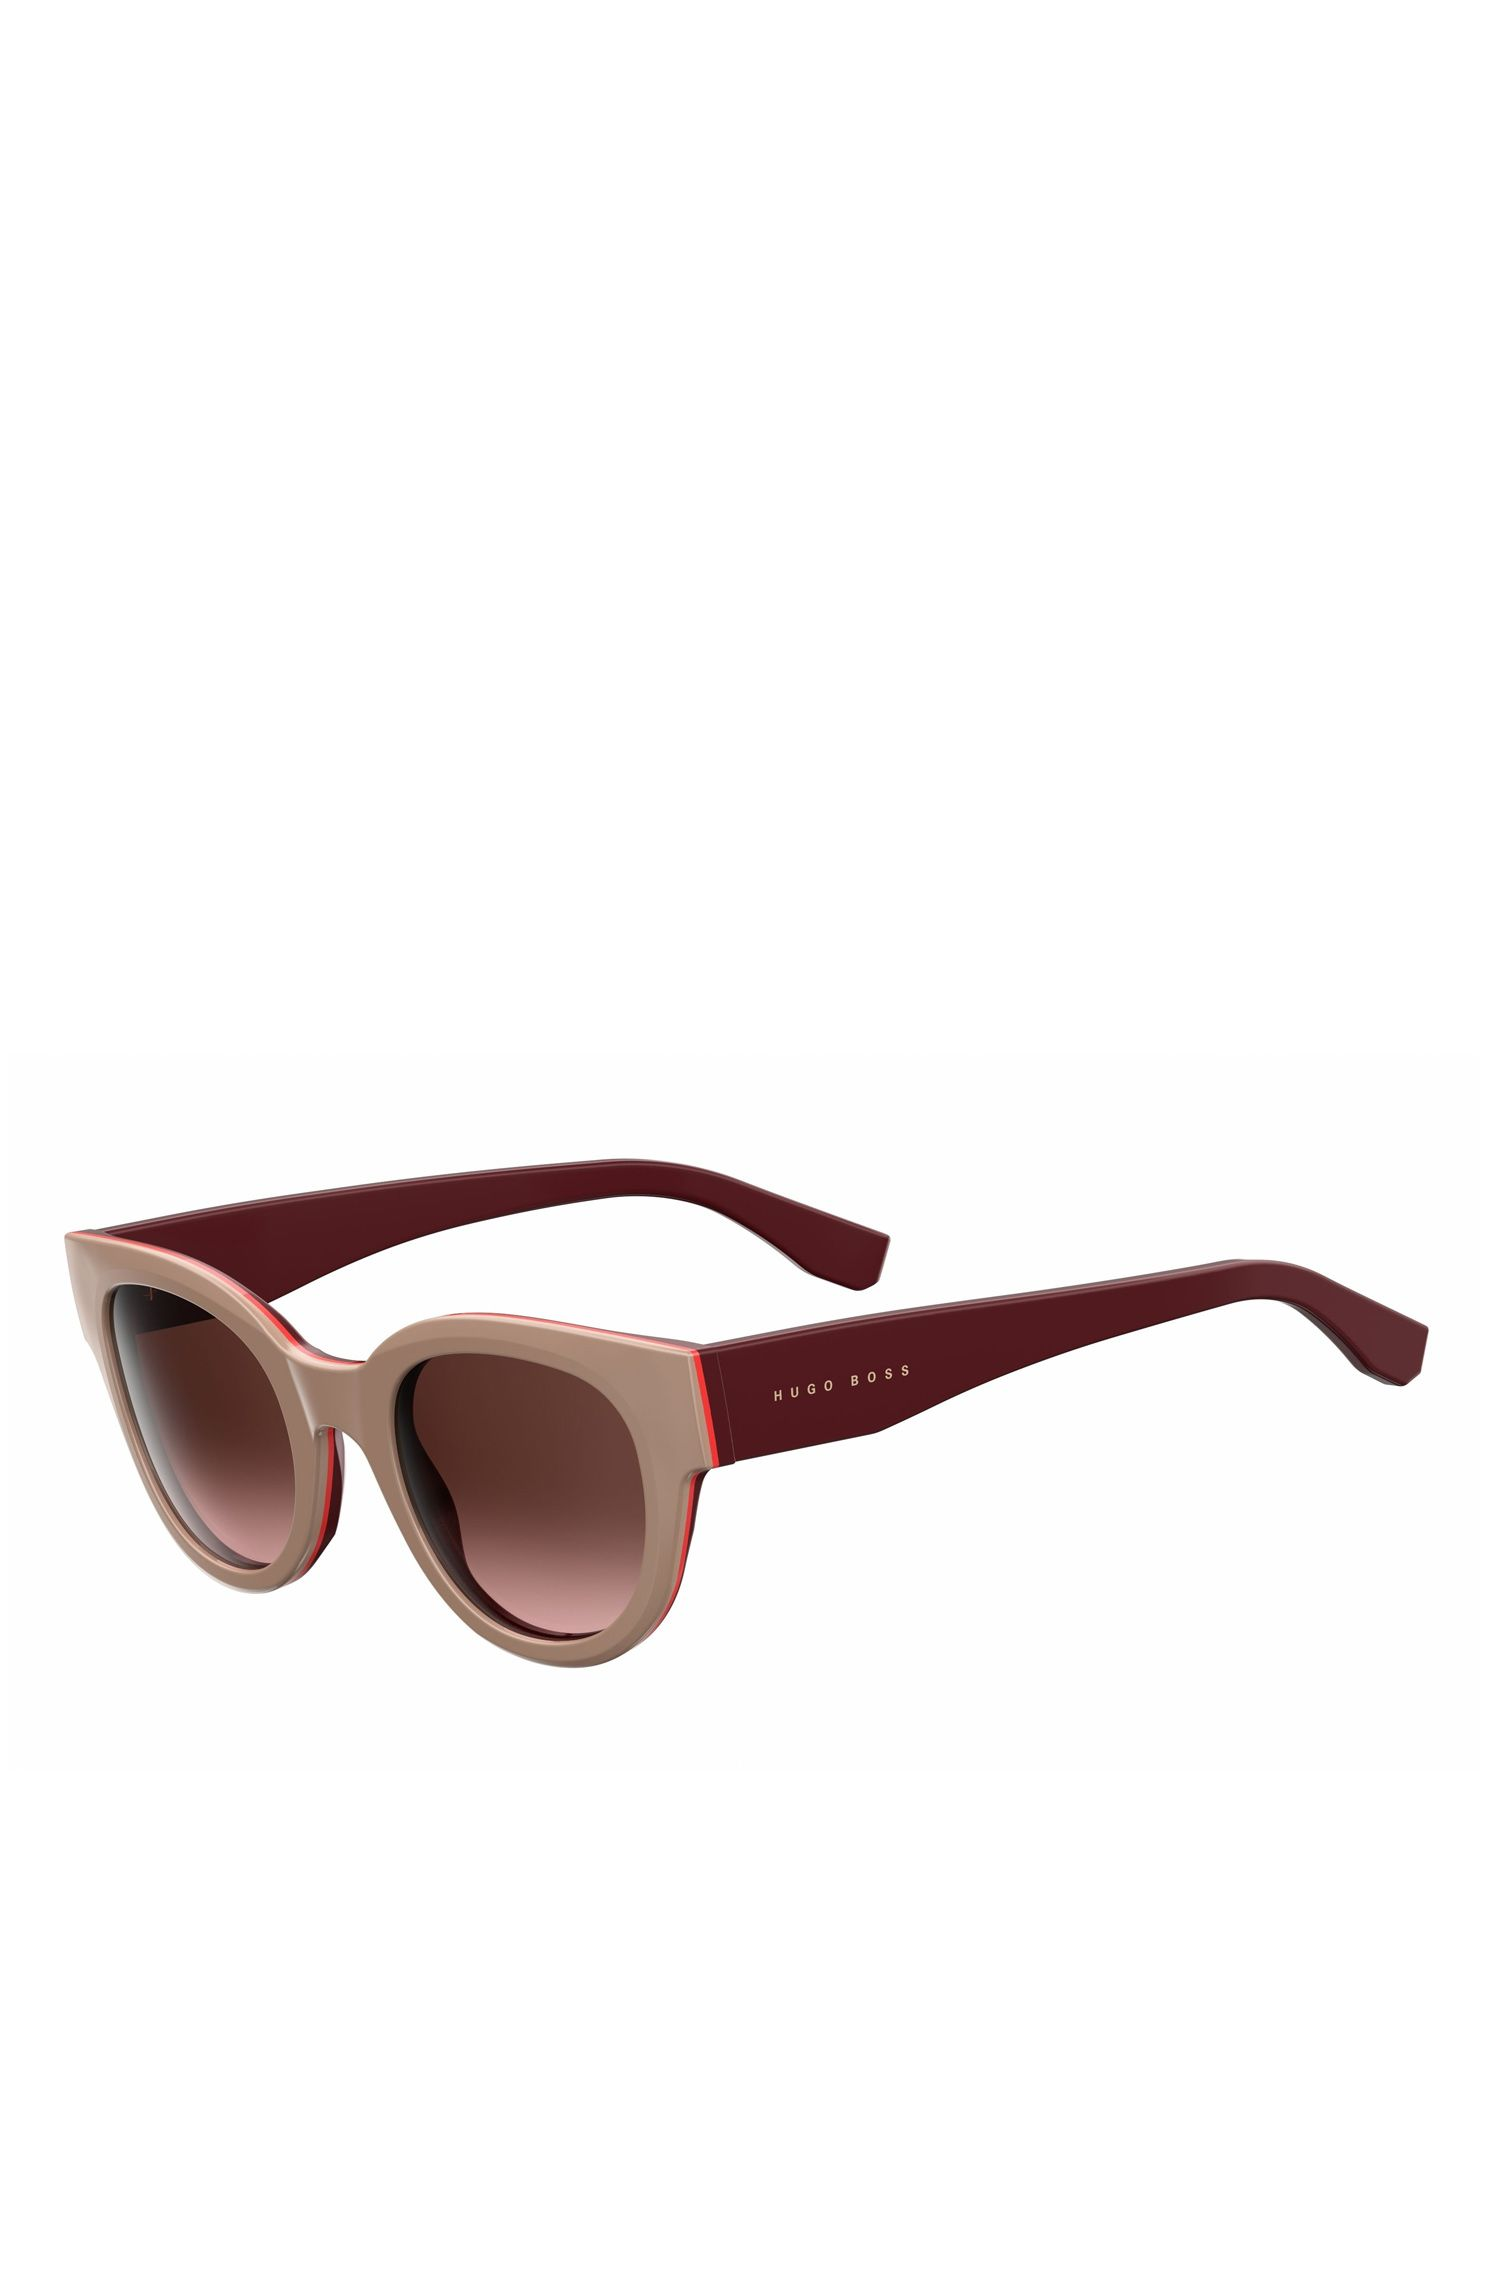 Gradient Lens Block Cat Eye Sunglasses | BOSS 0888S